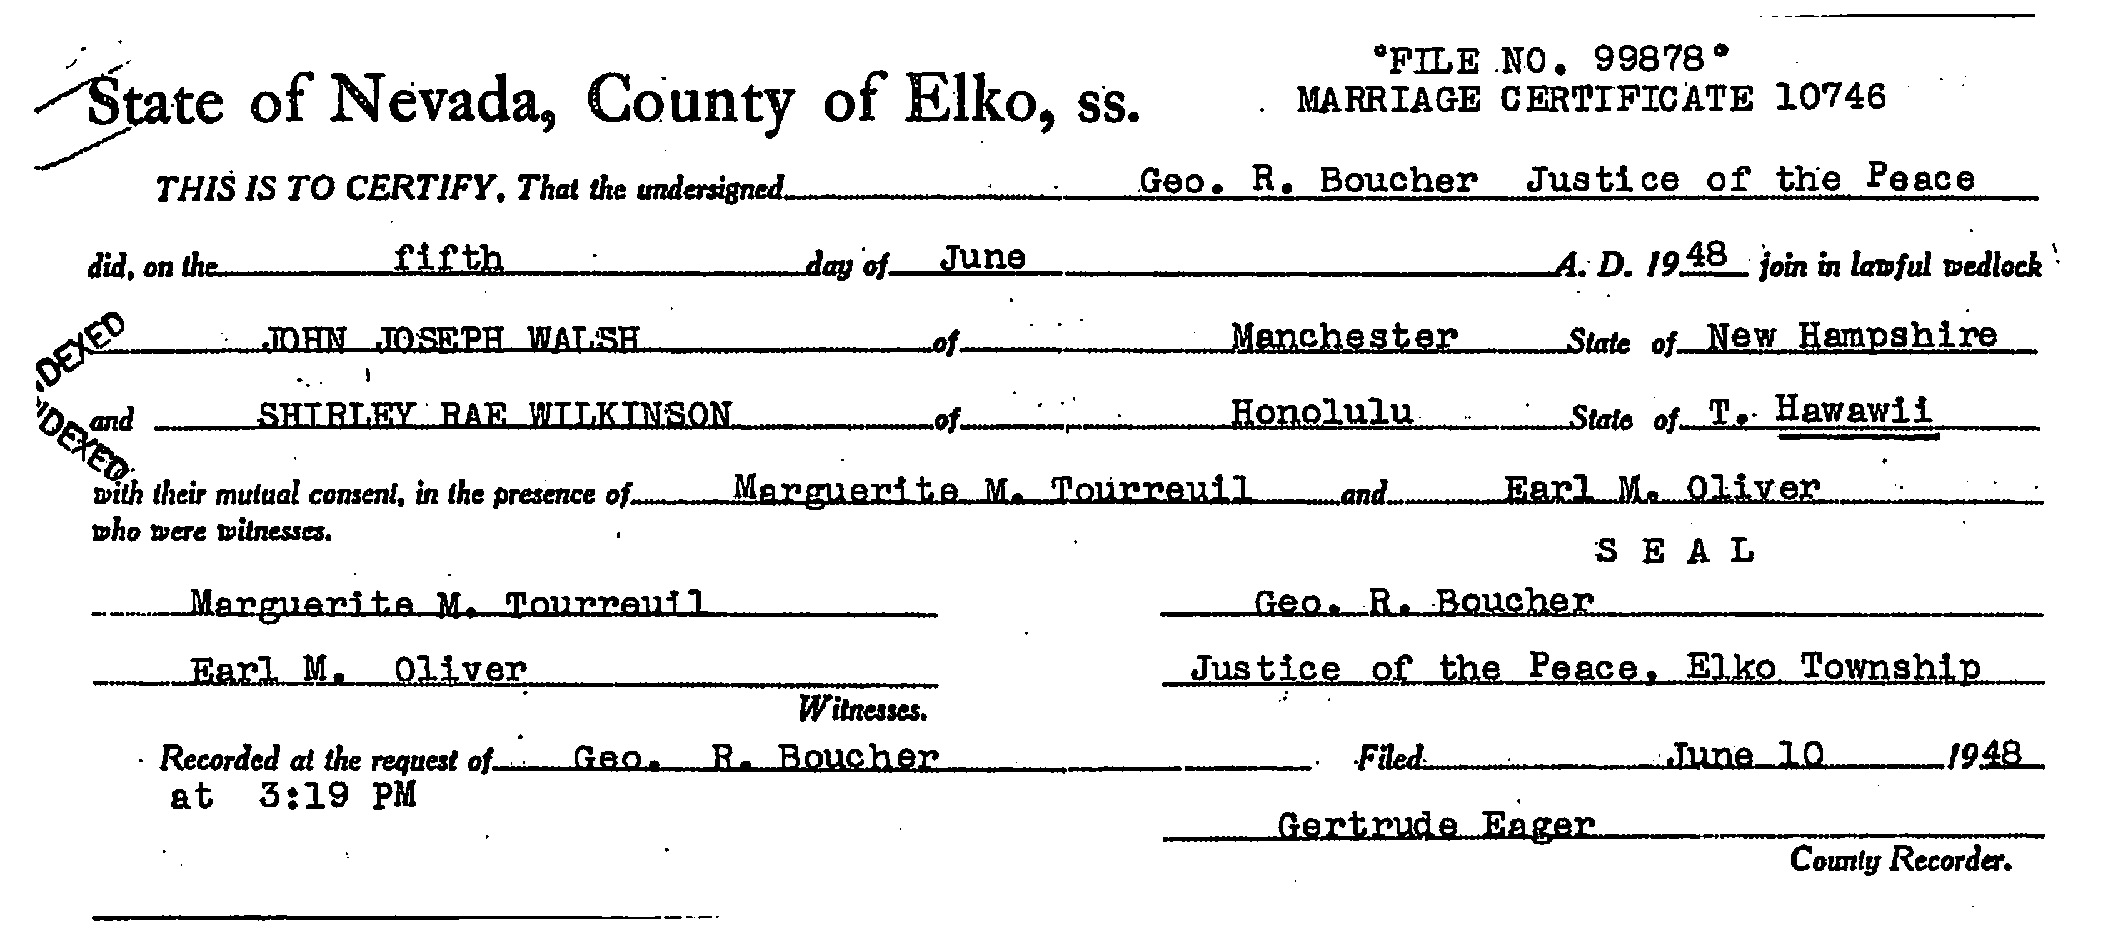 Documents Marriage Certificate John Joseph Walsh And Shirley